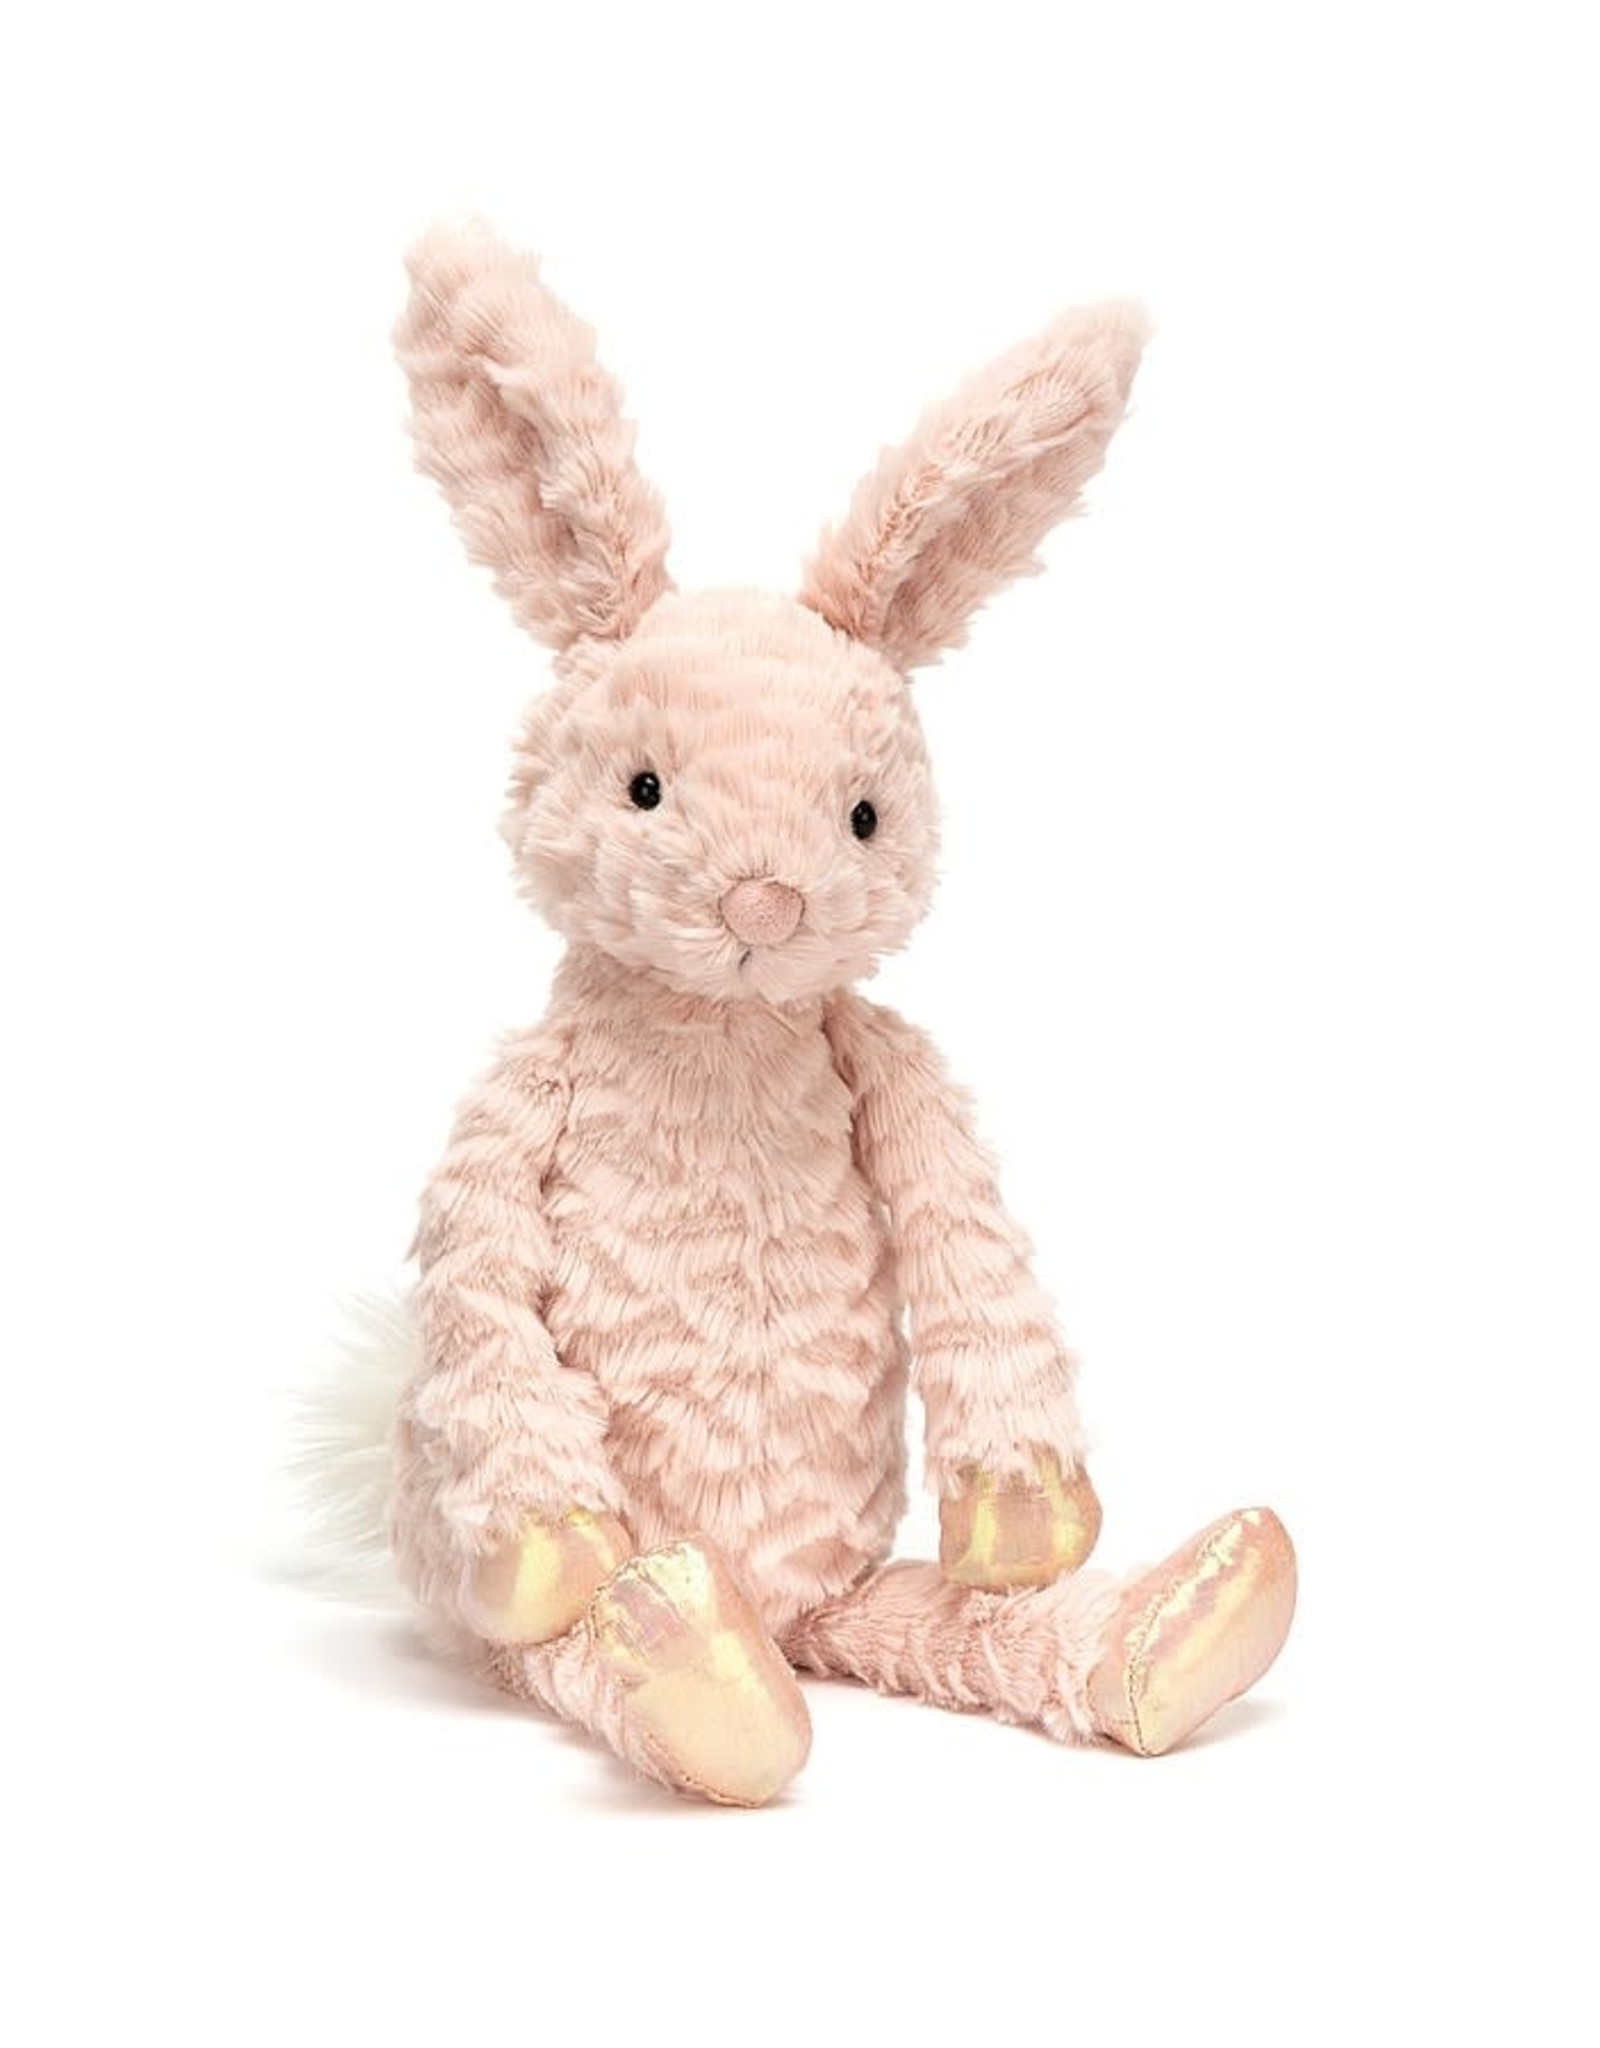 Jelly Cat Plush - Little Dainty Bunny Small